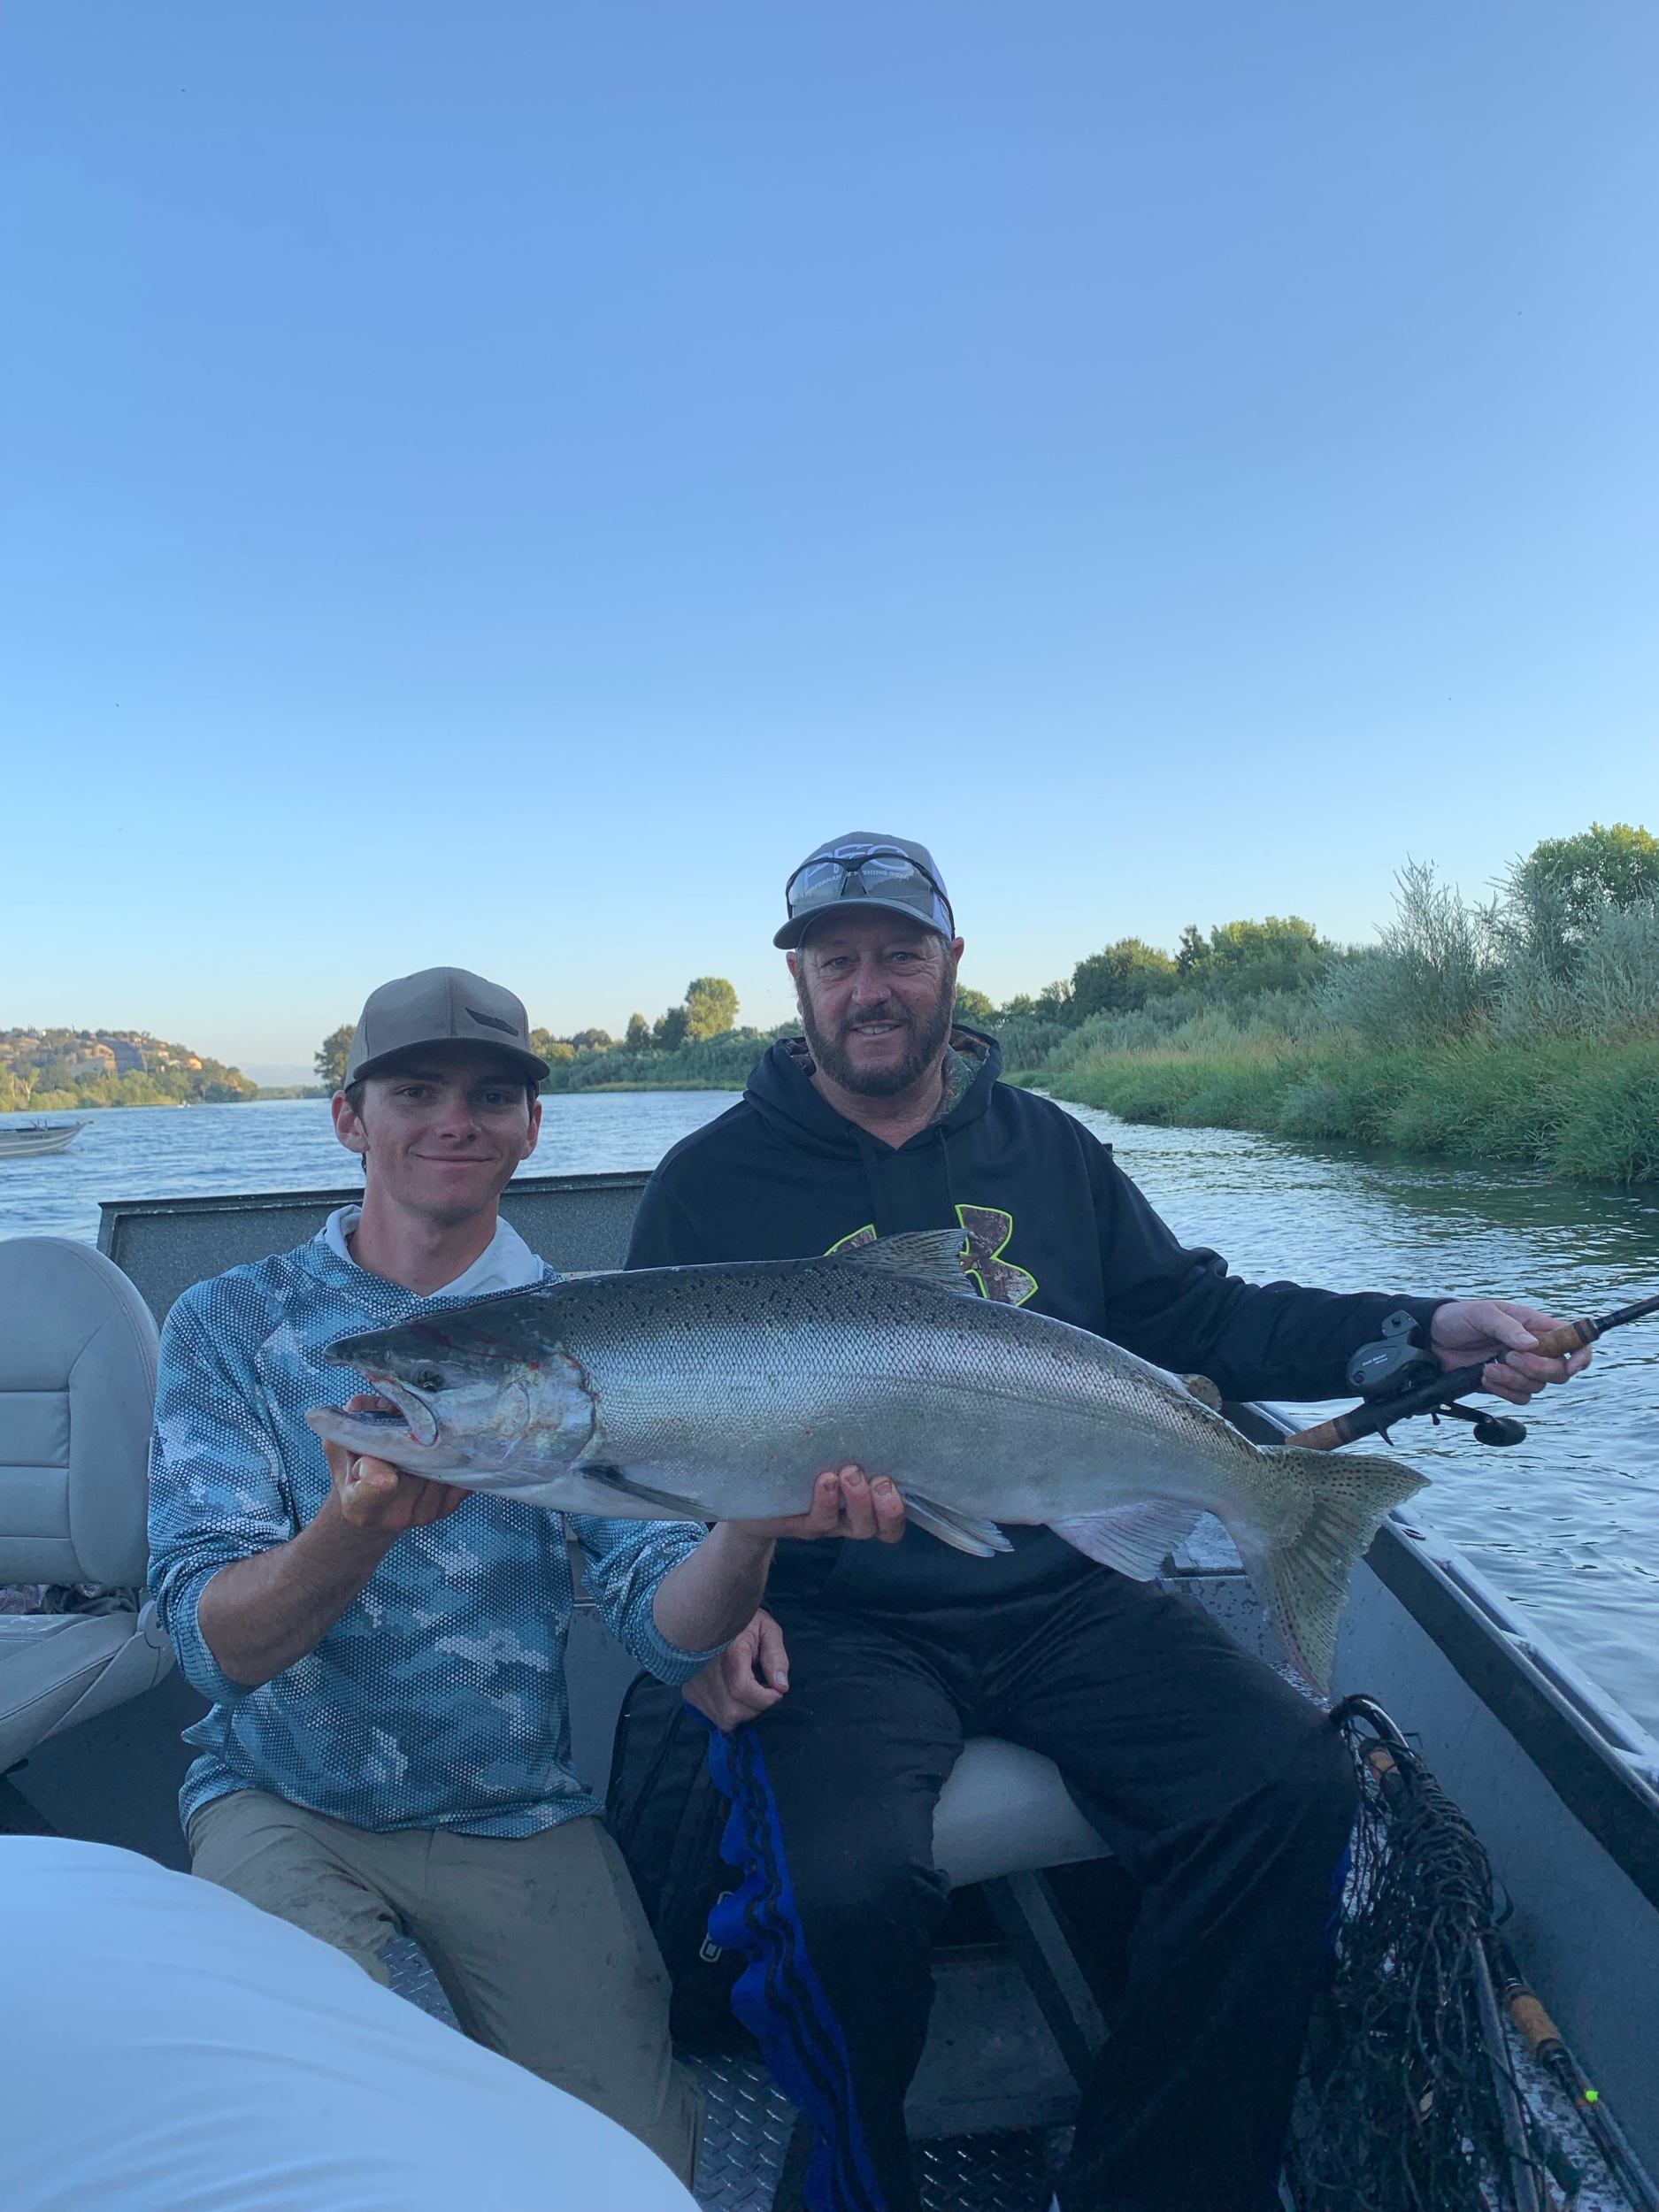 This beautiful King Salmon being held by fishing guide Ryan Tripp. Was caught by Jeff Weir from Fairfield, Ca on opening day. Jeff was fishing on board the  salmonsacriver.com  fishing charter on opening day at the famous Barge Hole.